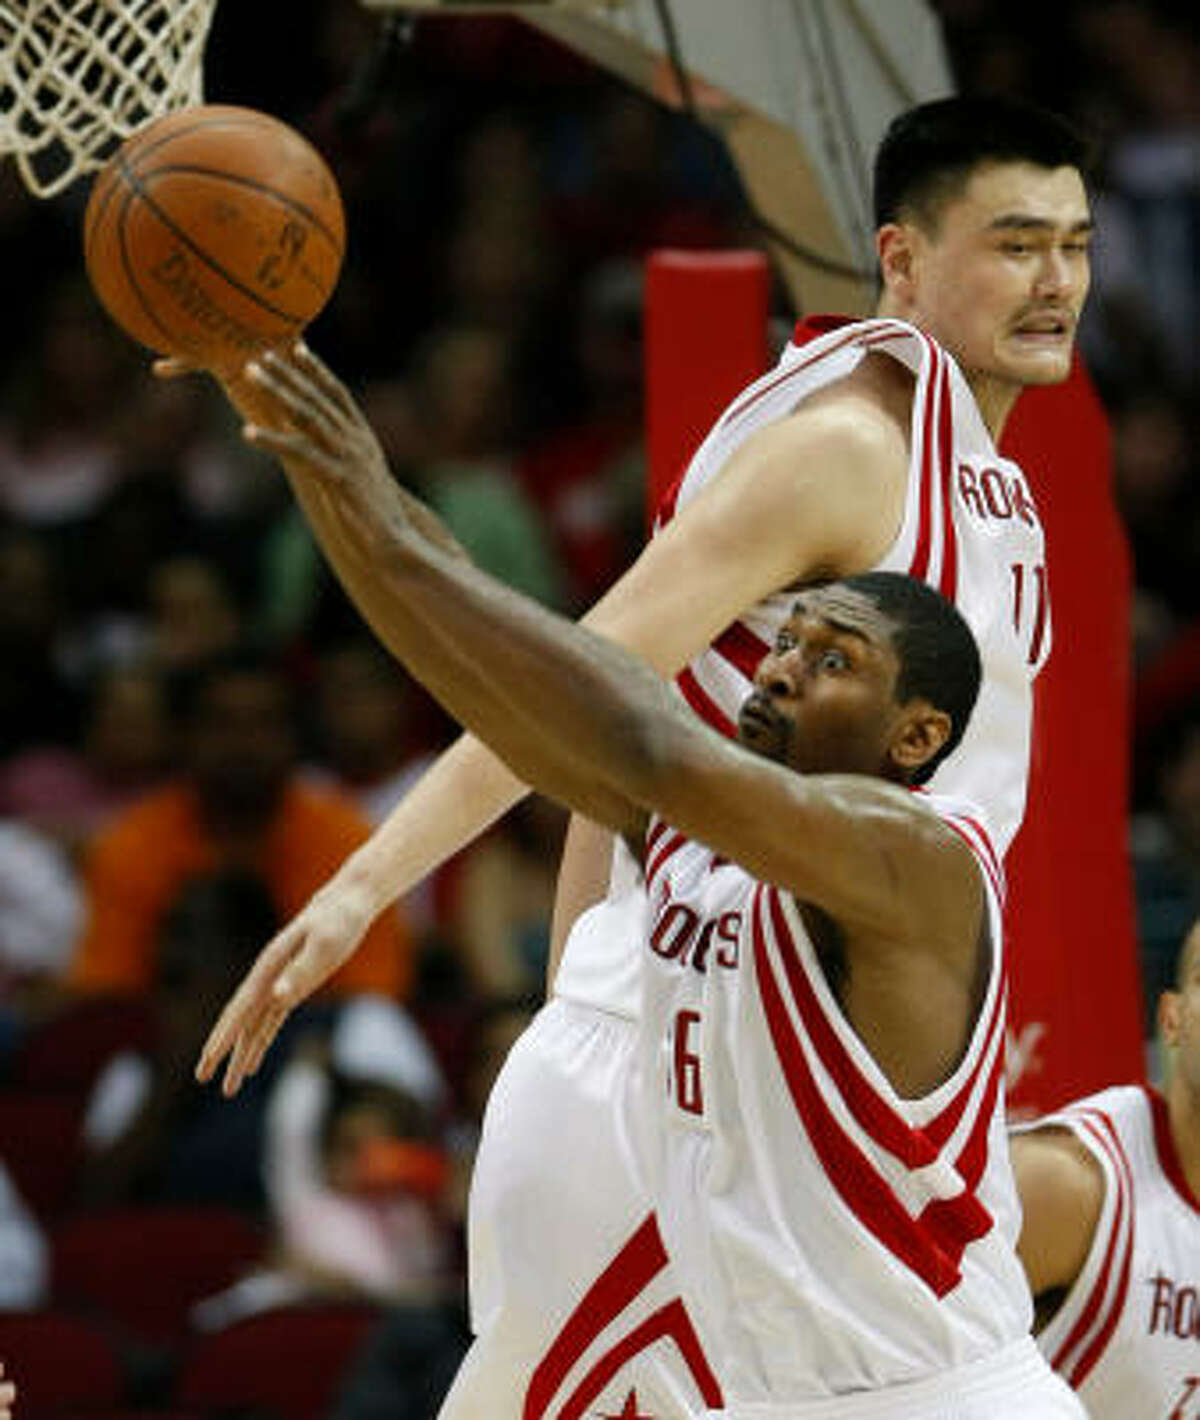 While regarded as two of the Rockets' best players, neither Ron Artest, bottom, nor Yao Ming, top, have established themselves as the team's singular leader.